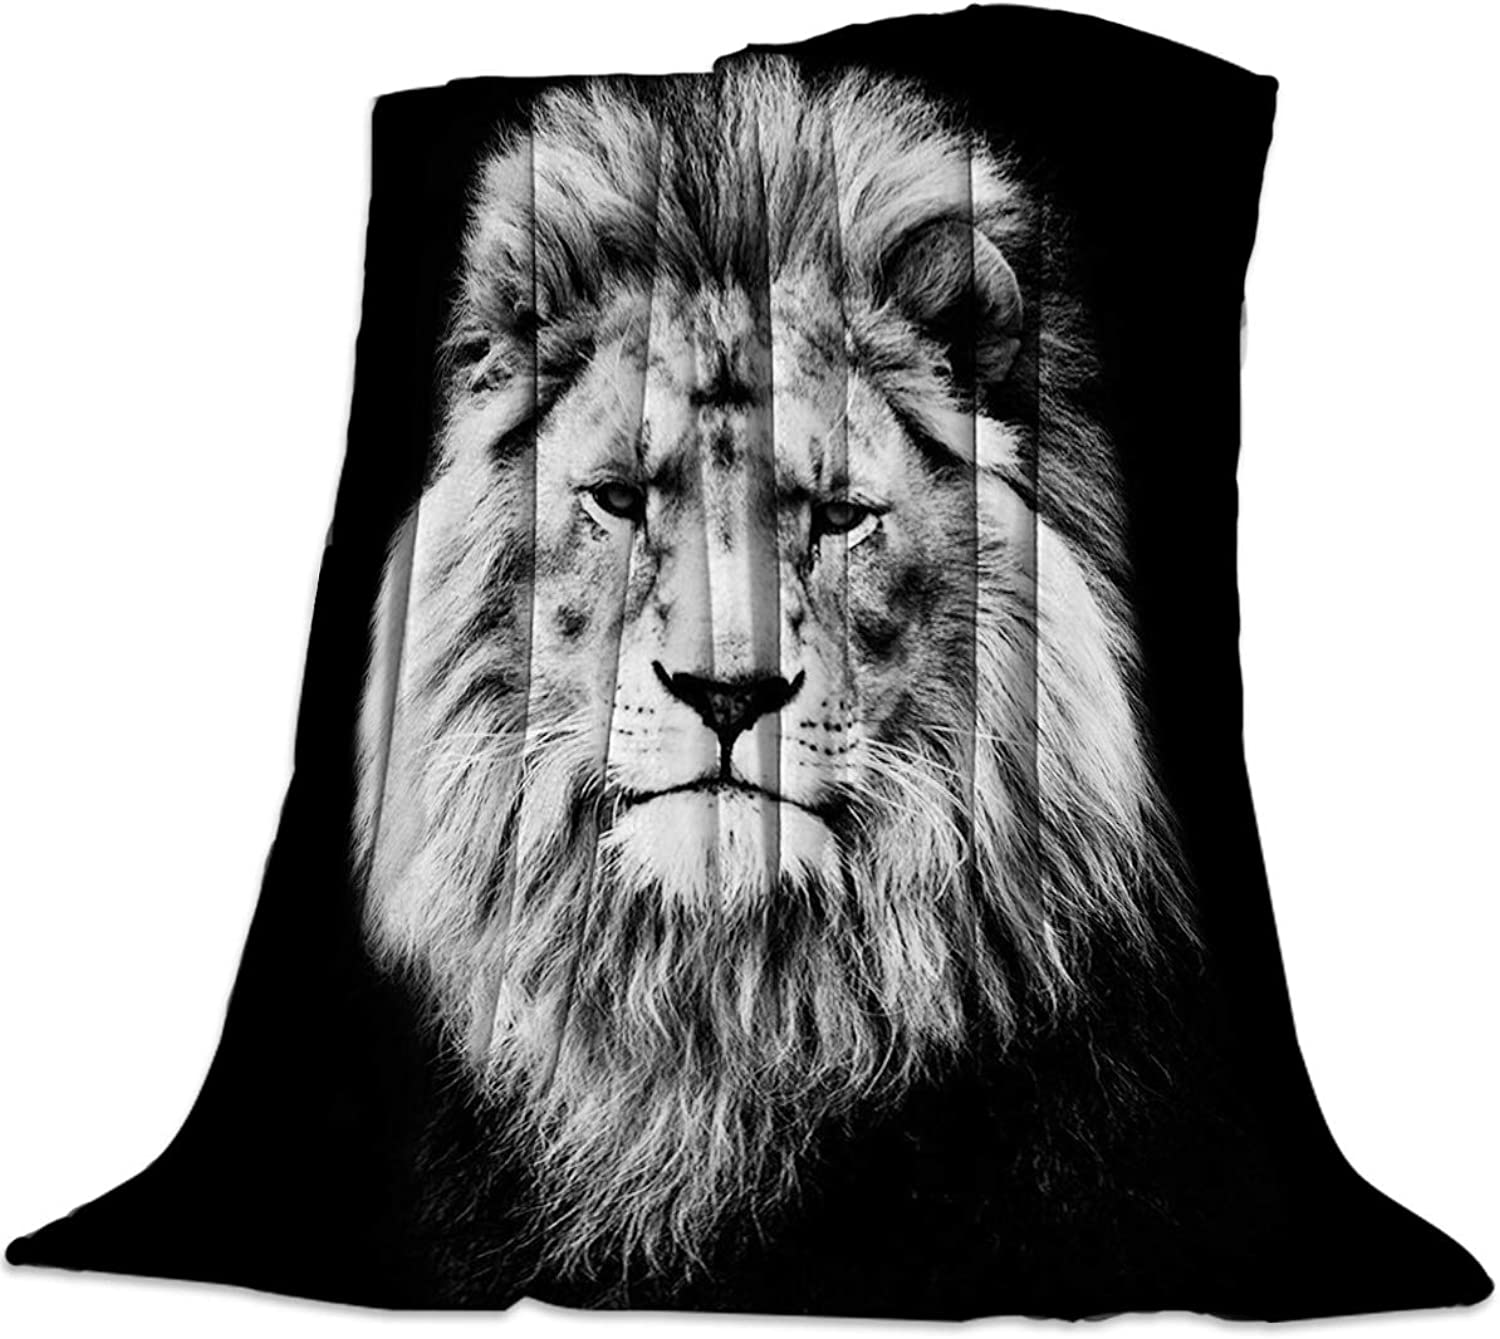 YEHO Art Gallery 49x59 Inch Flannel Fleece Bed Blanket Soft ThrowBlankets for Girls Boys,Serious 3D Lion Head Animal Printing,Cozy Lightweight Blankets for Bedroom Living Room Sofa Couch